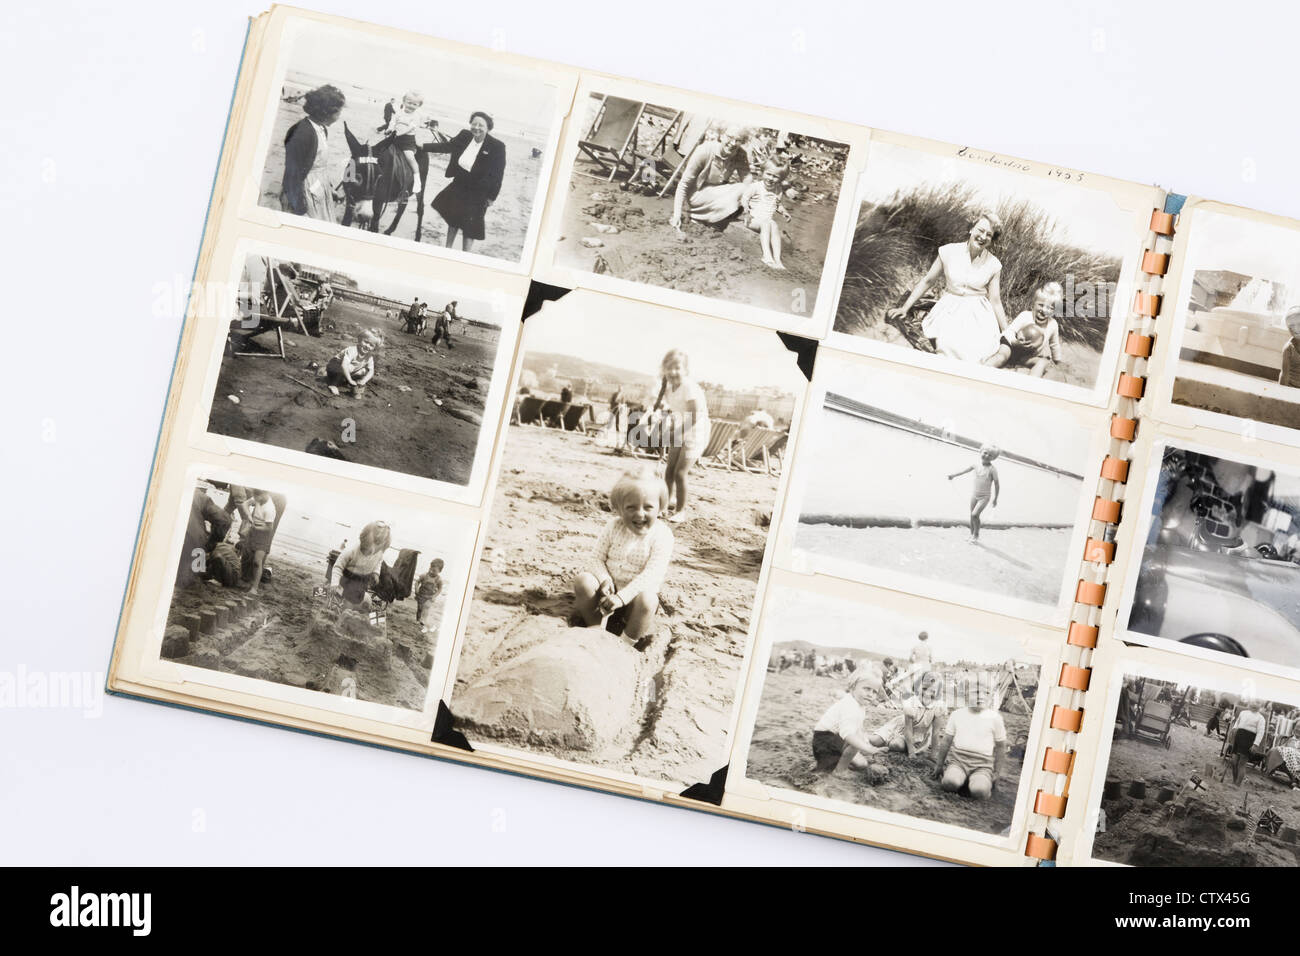 Old Faded Black And White Printed Photographs In A Family Photograph